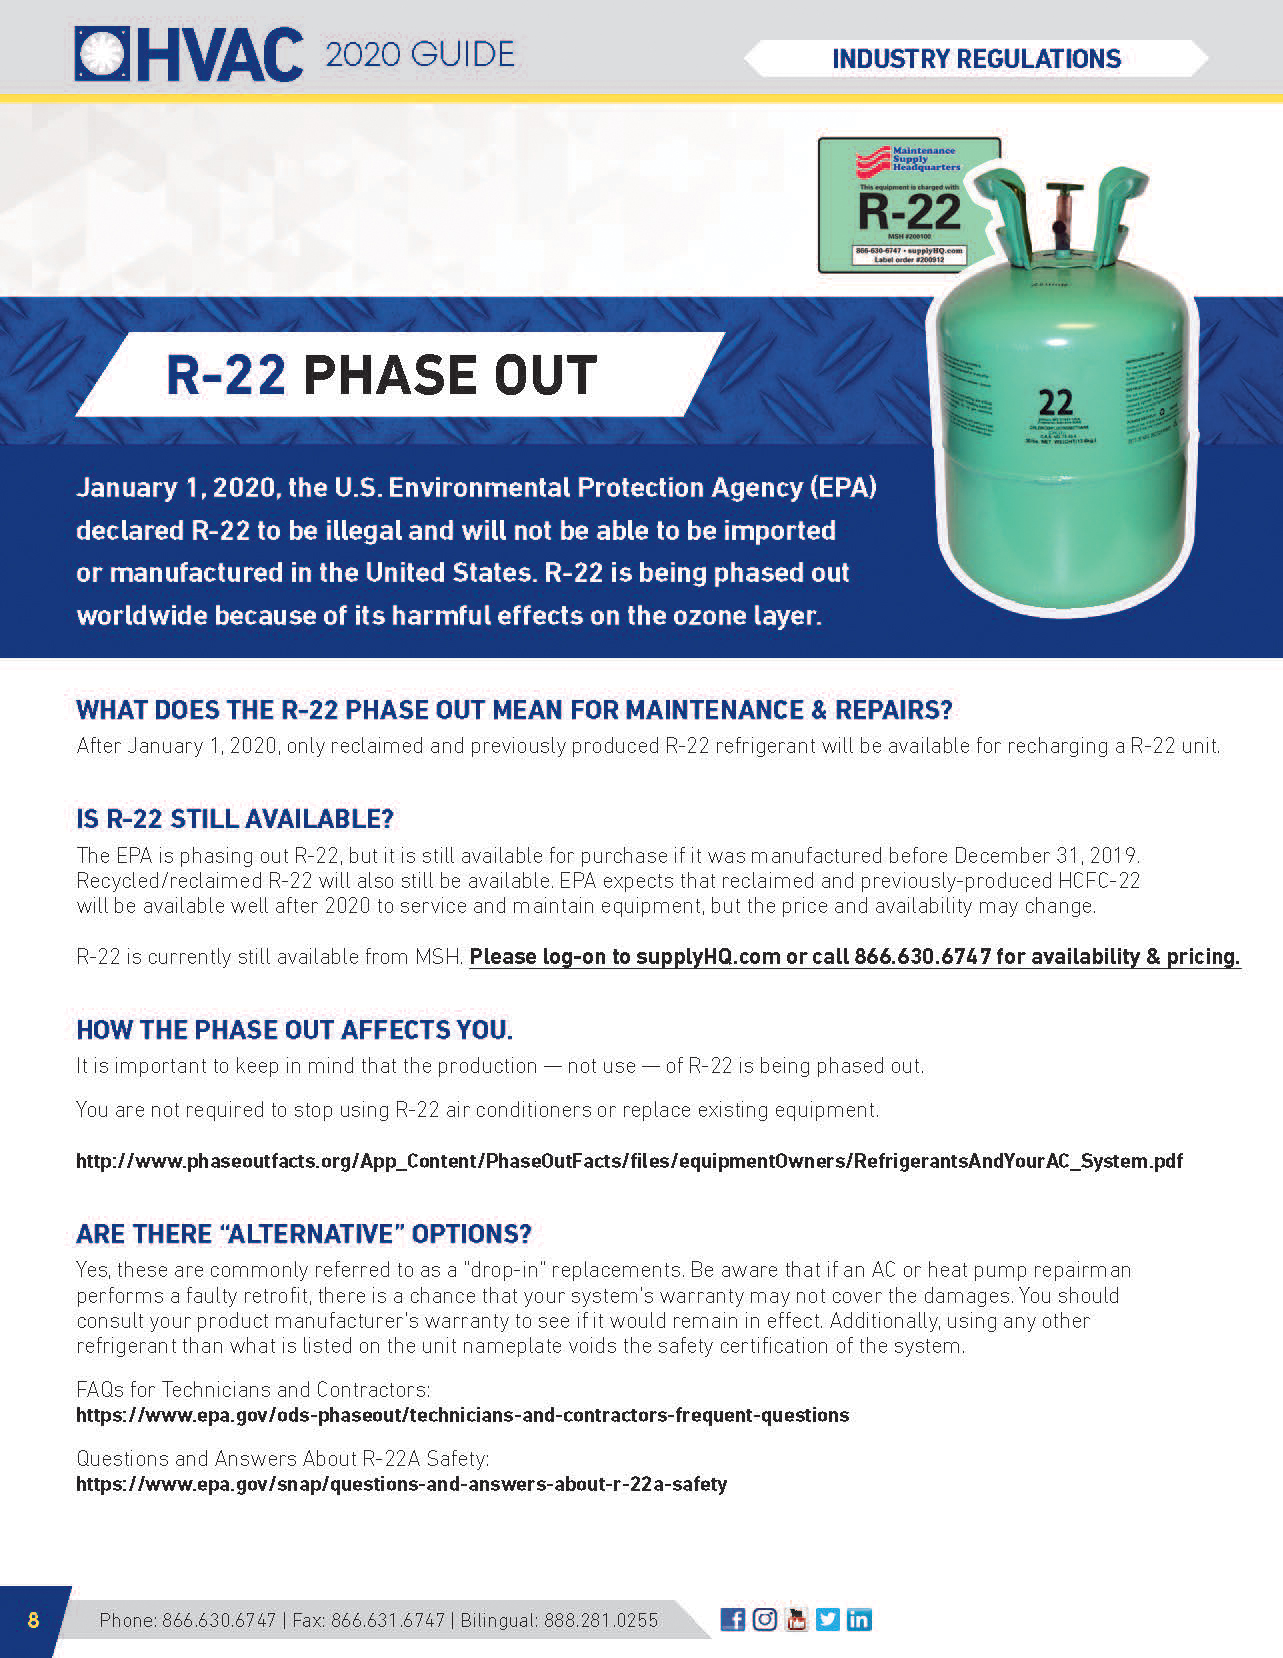 R-22 Phase Out Regulations Flyer